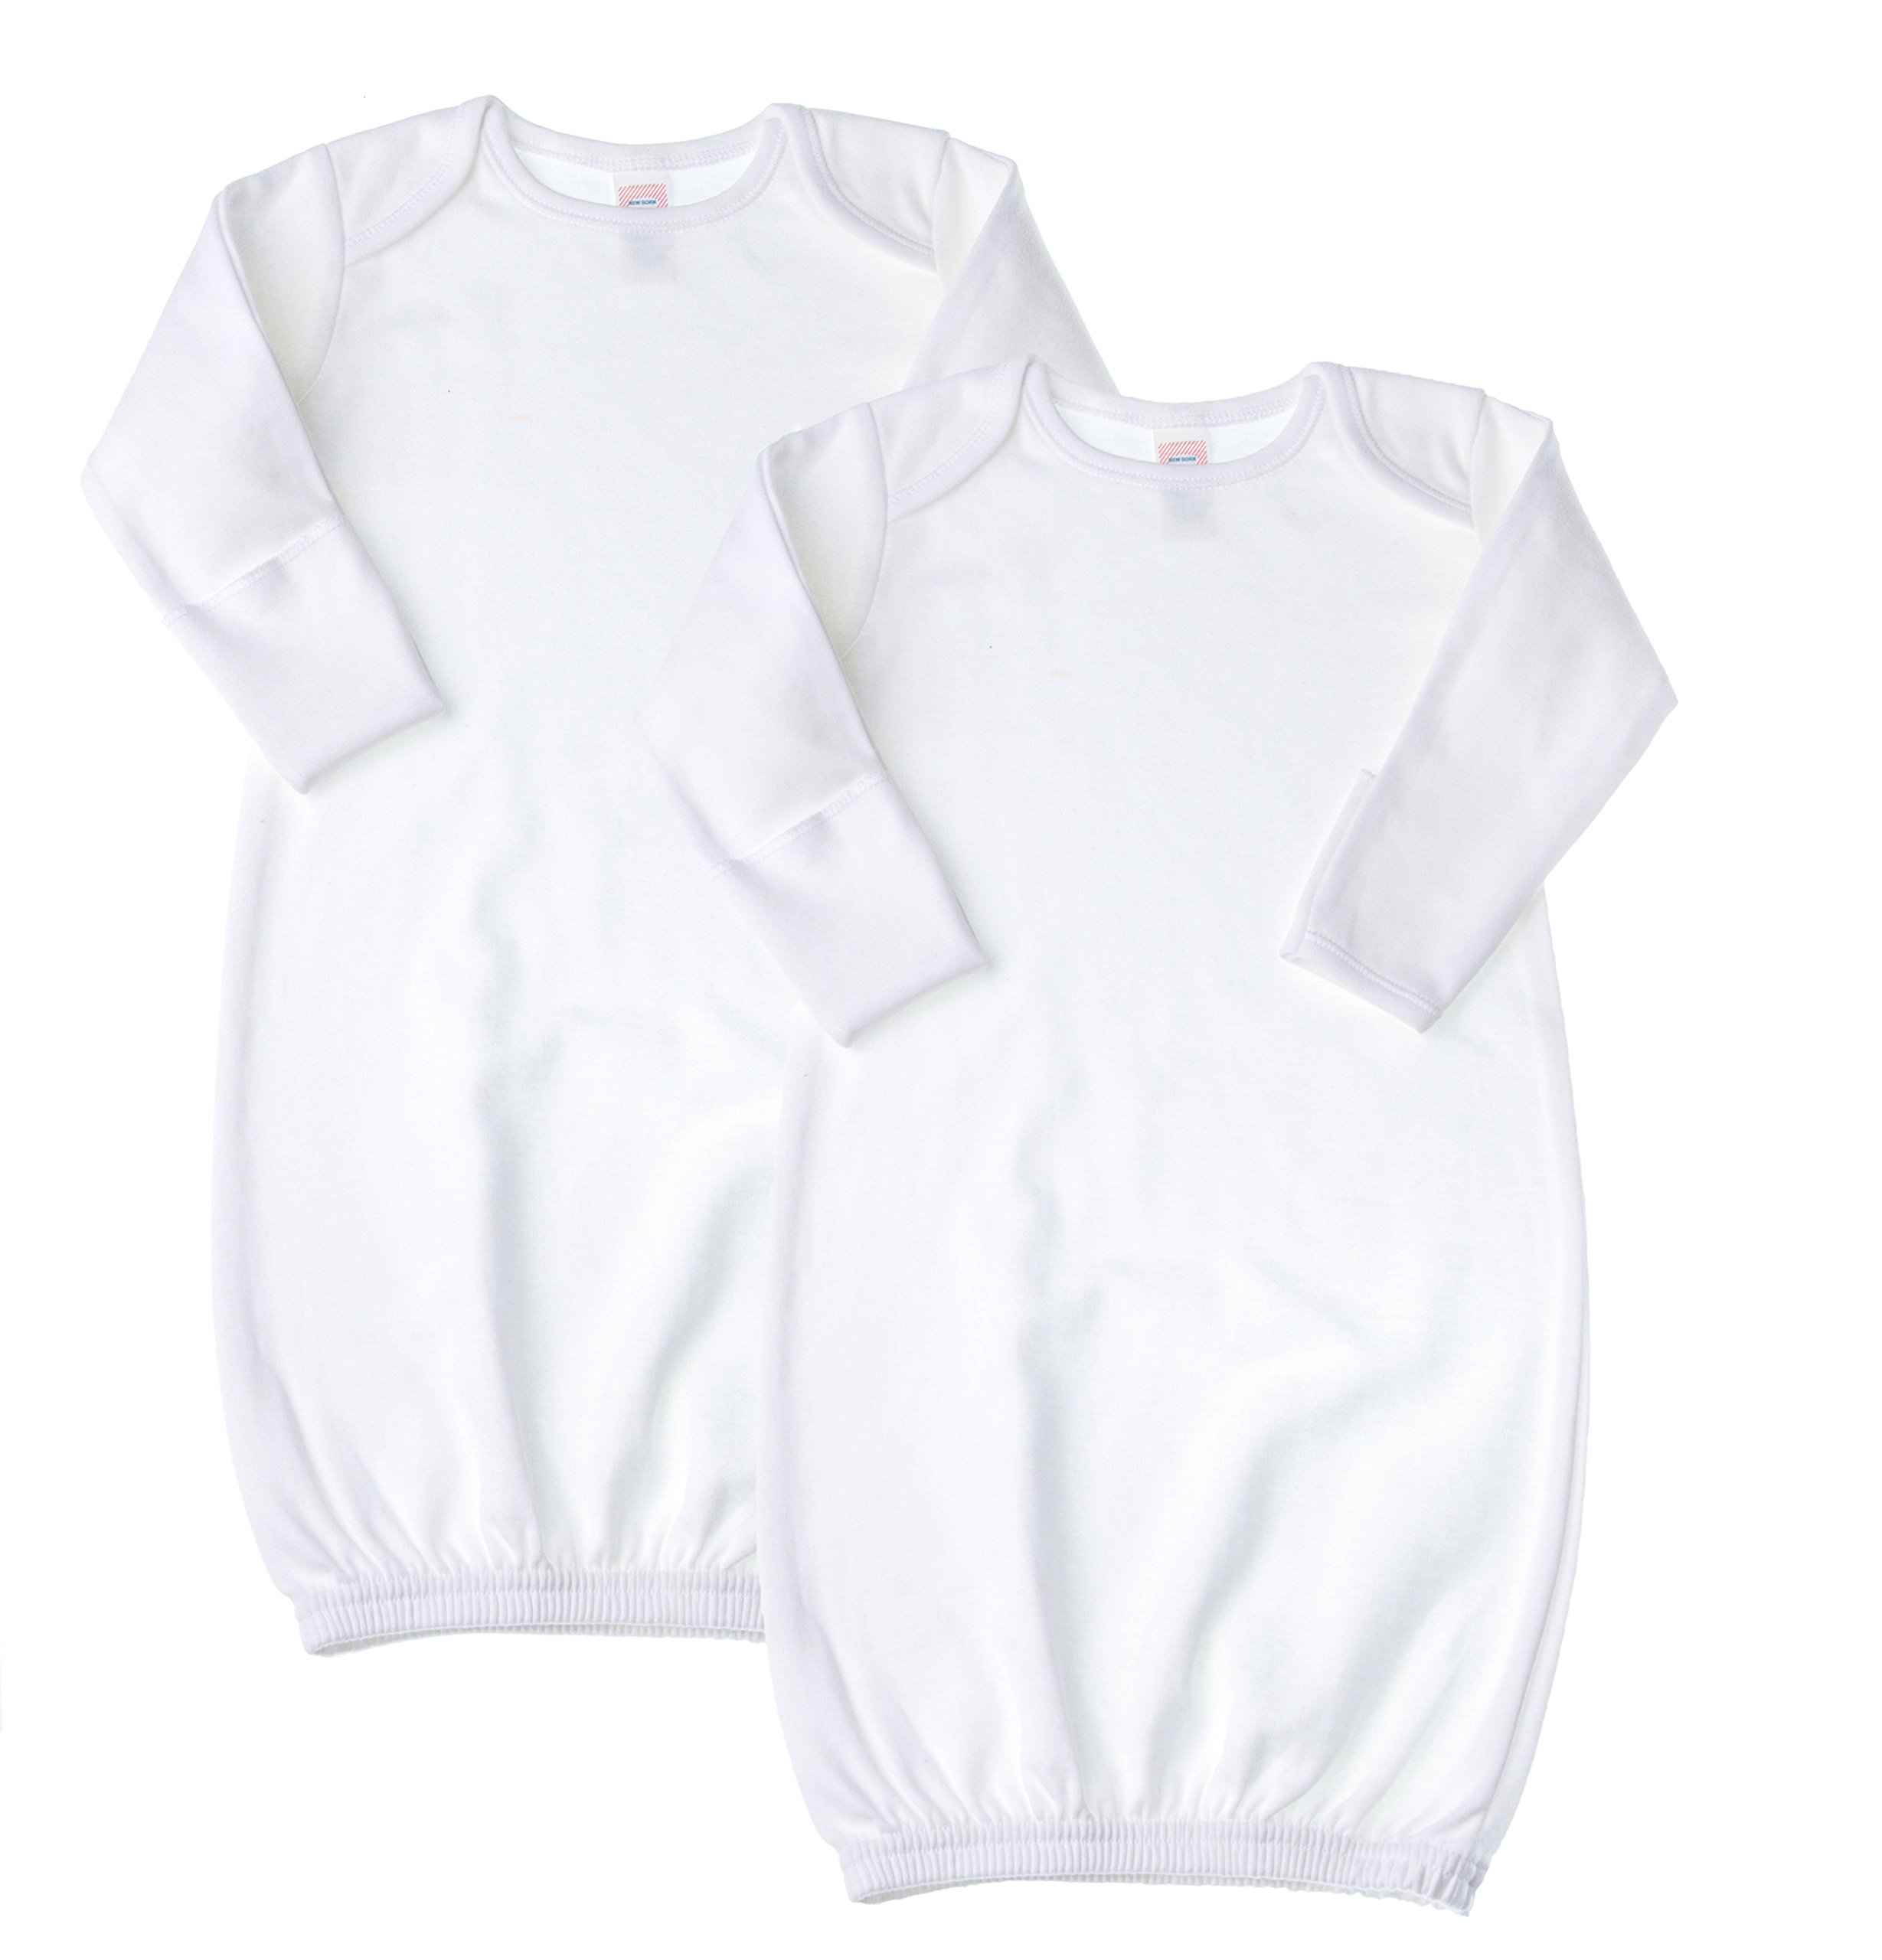 Baby Jay Newborn Sleeper Gown 2 Pack - White Soft Cotton Baby Nightgown Swaddle With Mitten Cuffs and Elastic Bottom